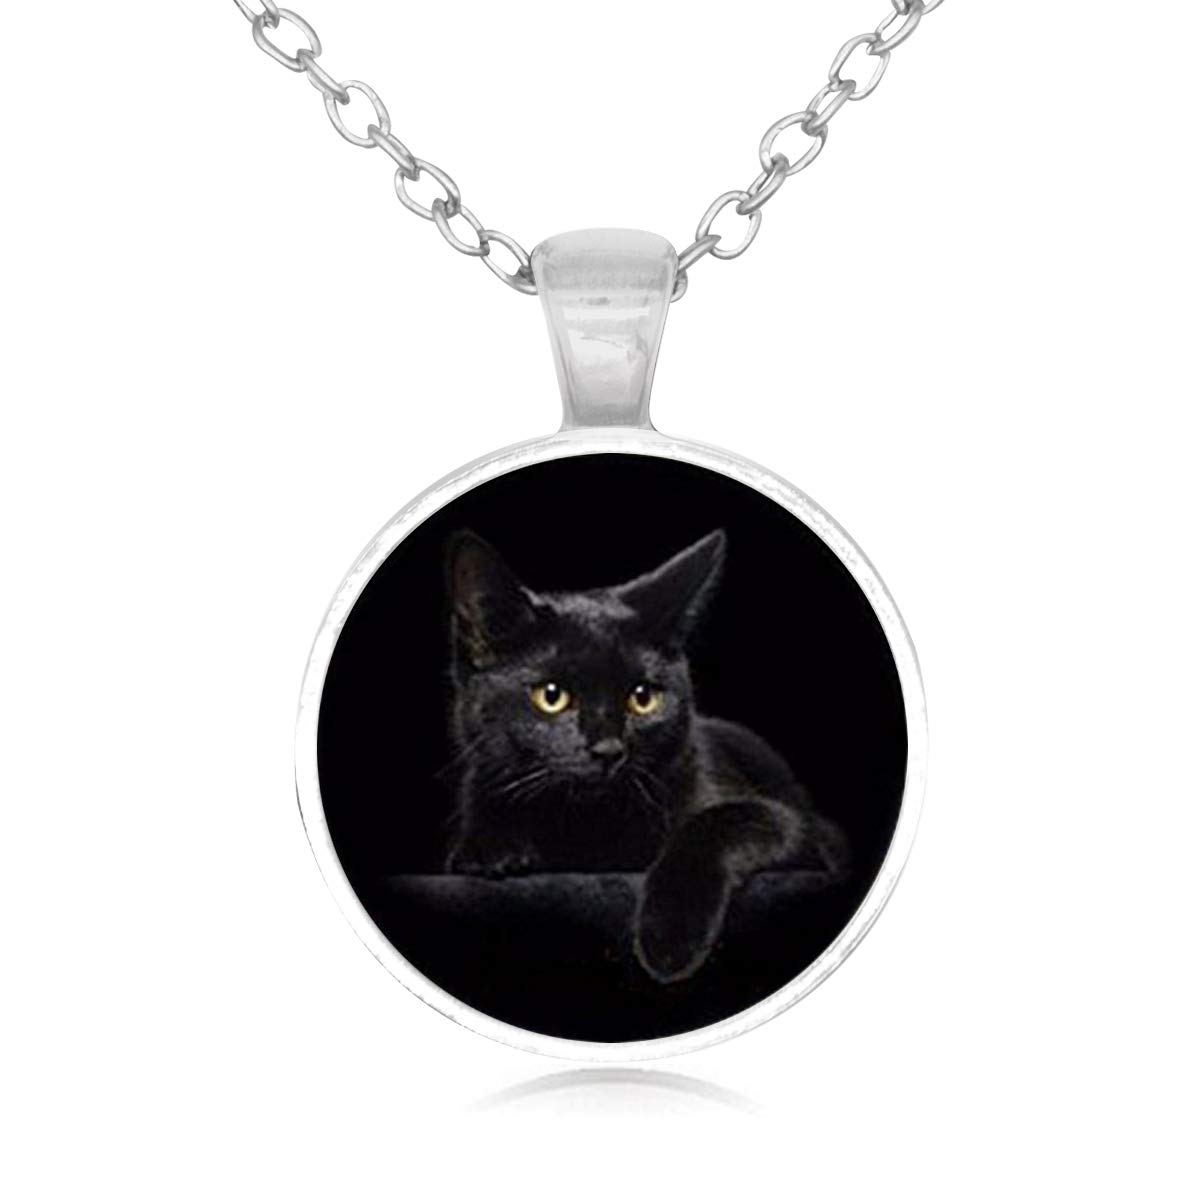 Family Decor Black Lovely Cat Pendant Necklace Cabochon Glass Vintage Bronze Chain Necklace Jewelry Handmade